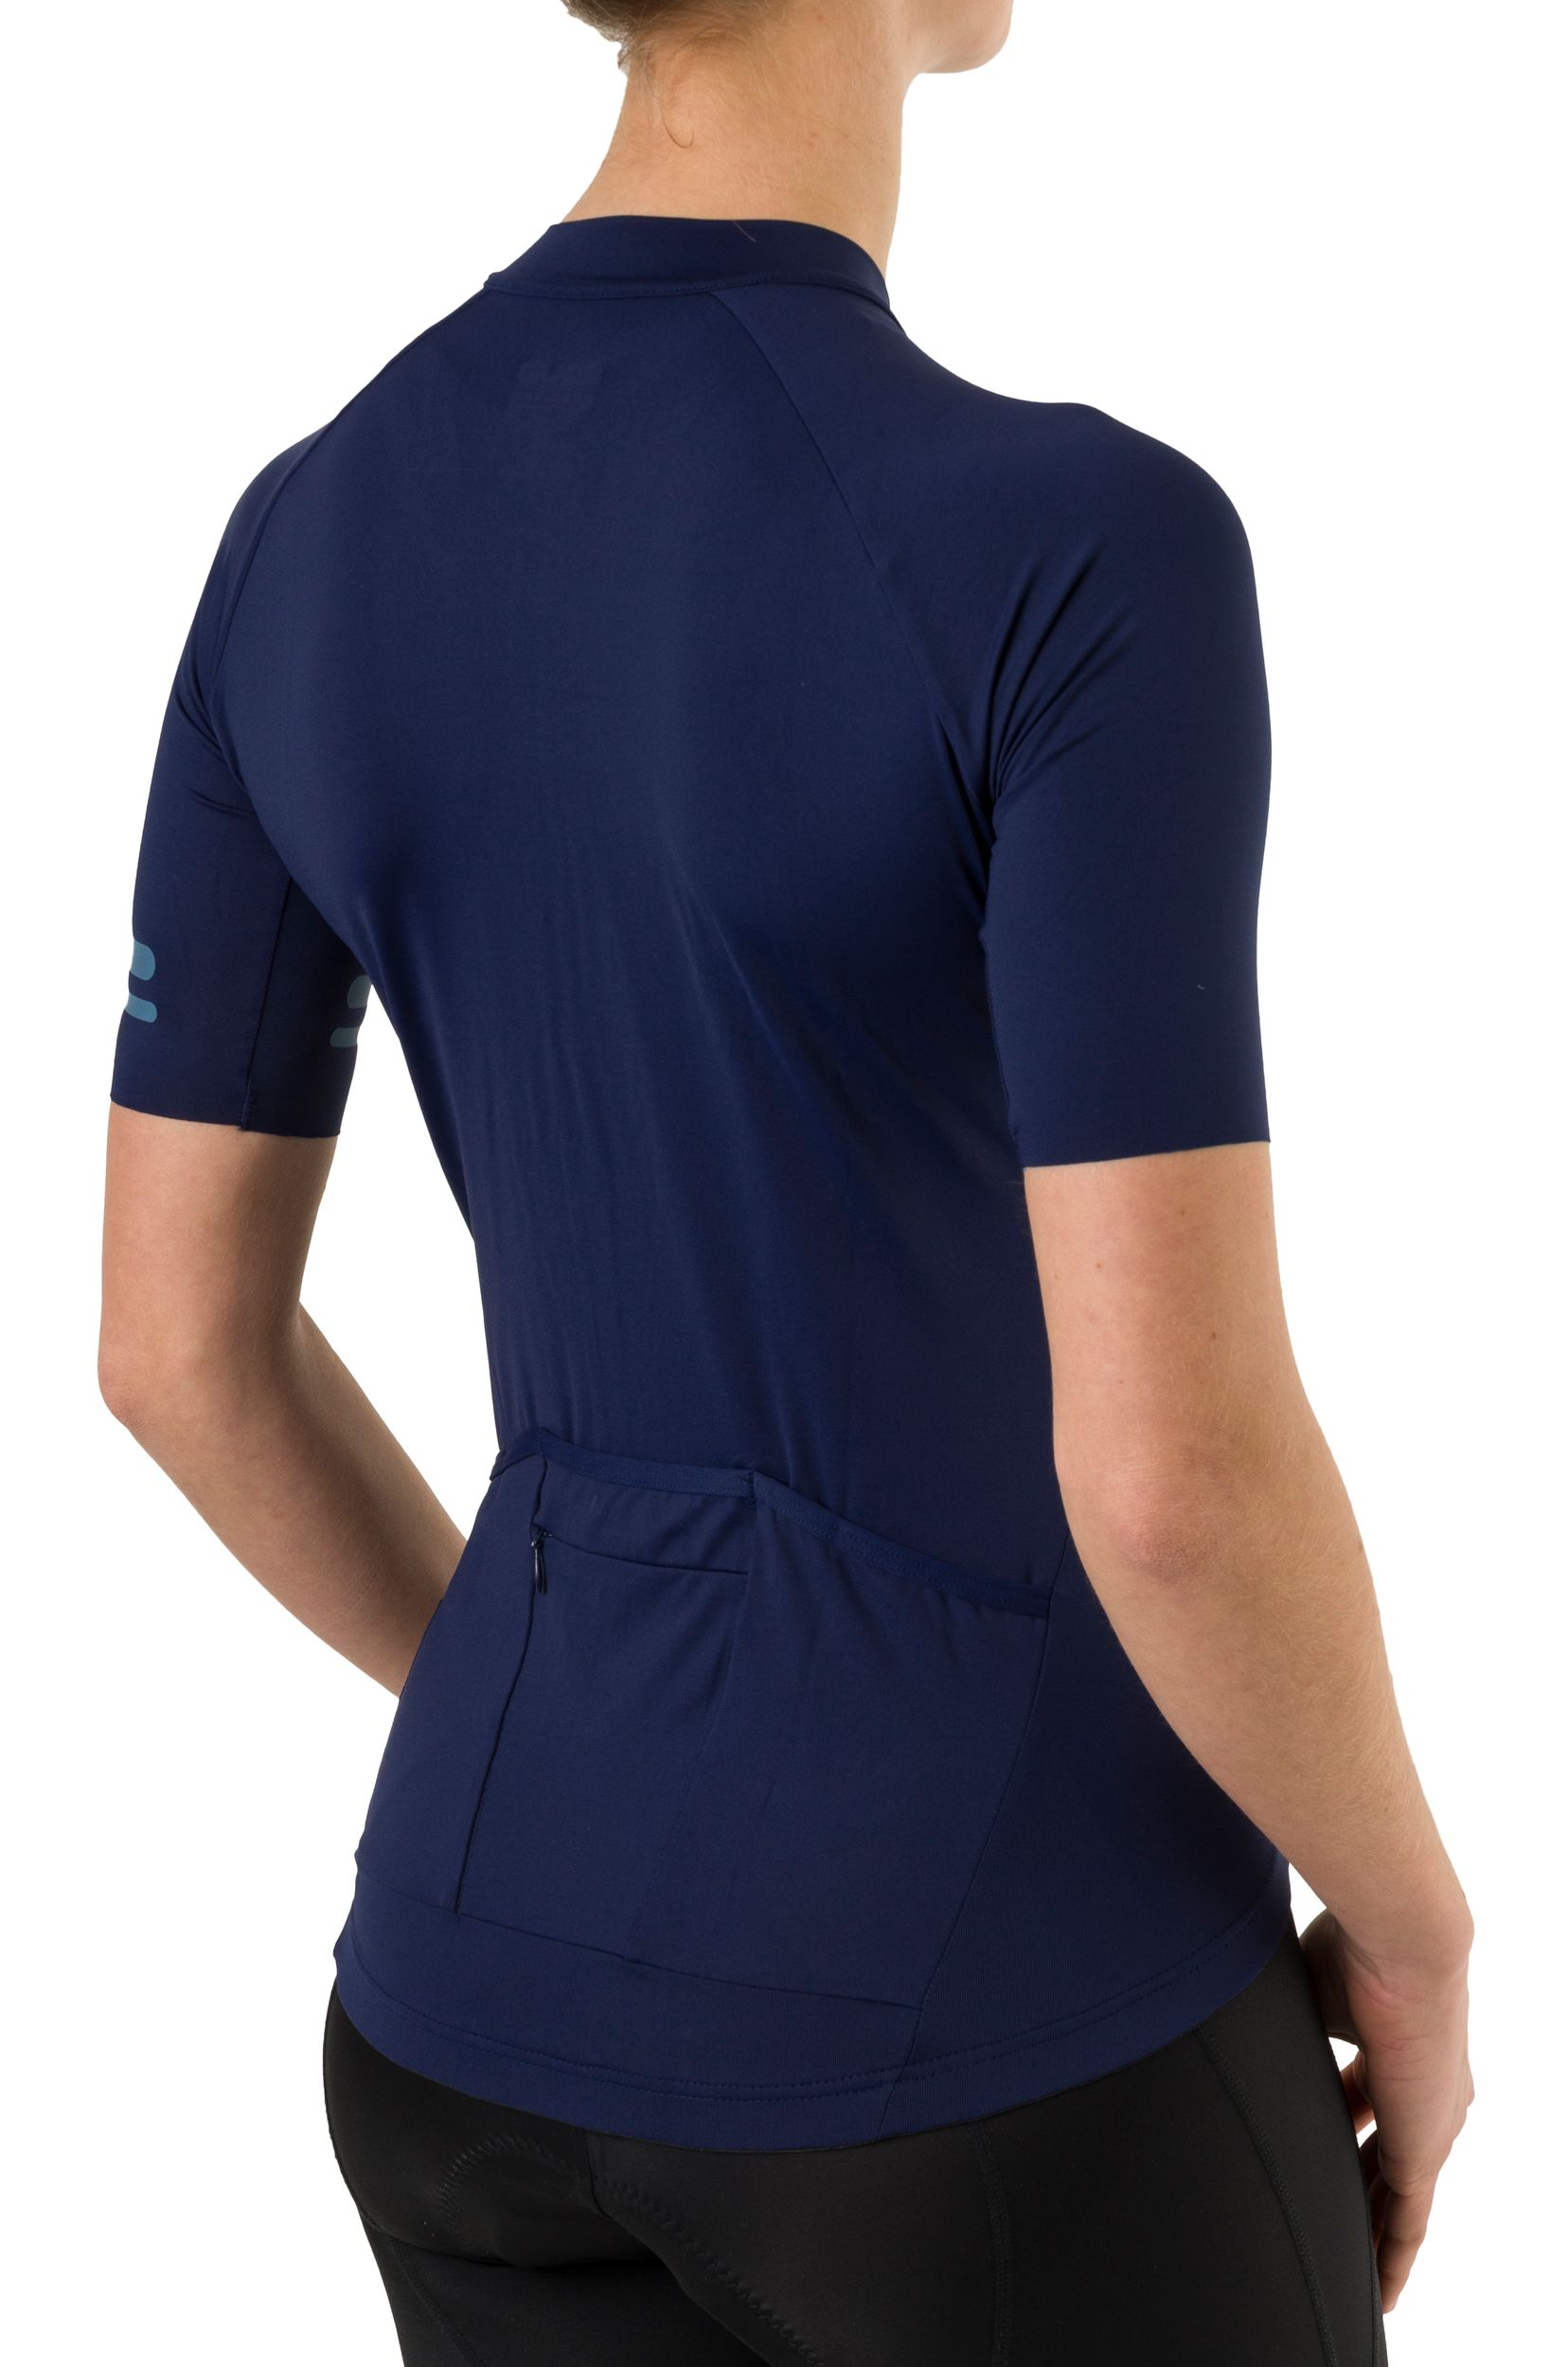 Solid Fietsshirt Trend Dames fit example